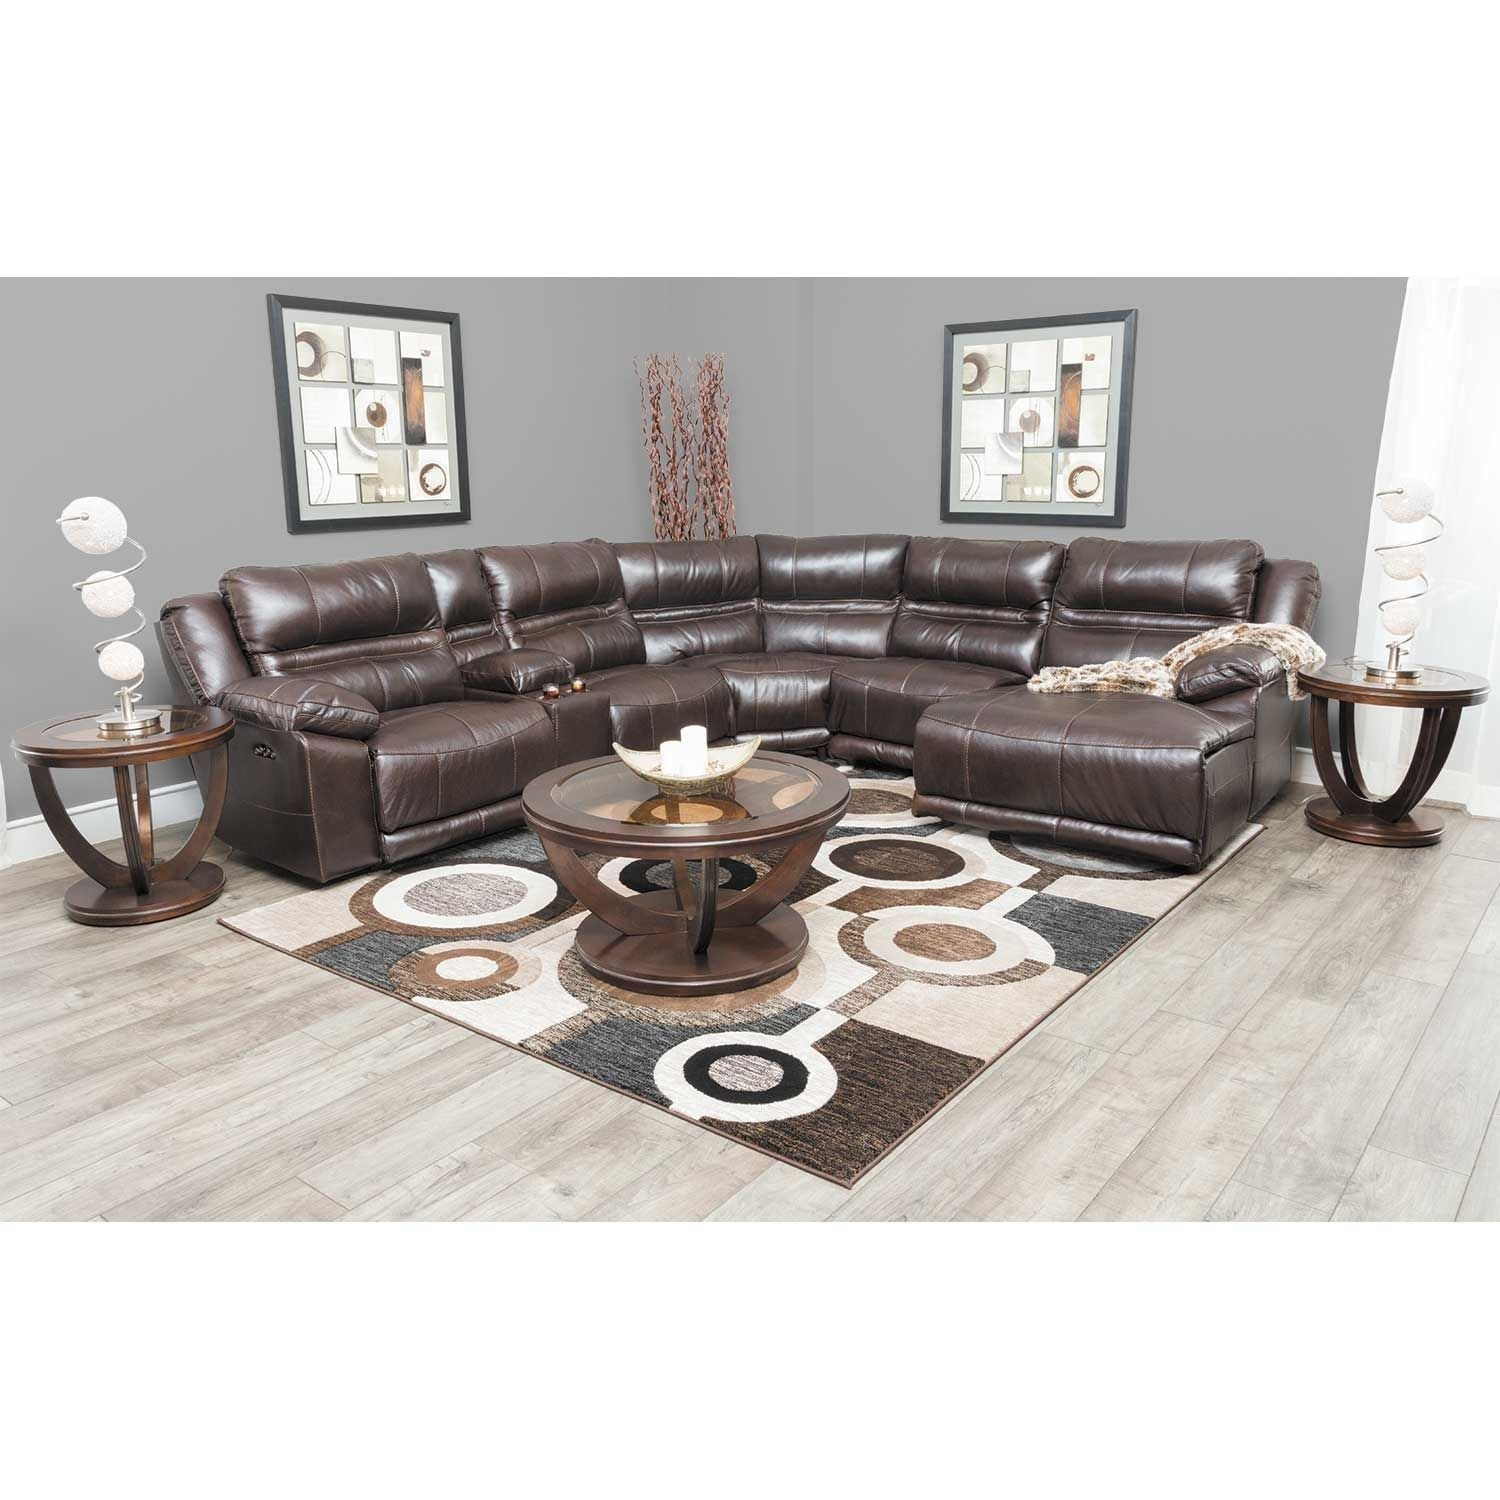 Bergamo 6 Piece Power Reclining Sectional With Adjustable Headrest For Jackson 6 Piece Power Reclining Sectionals With Sleeper (View 24 of 25)